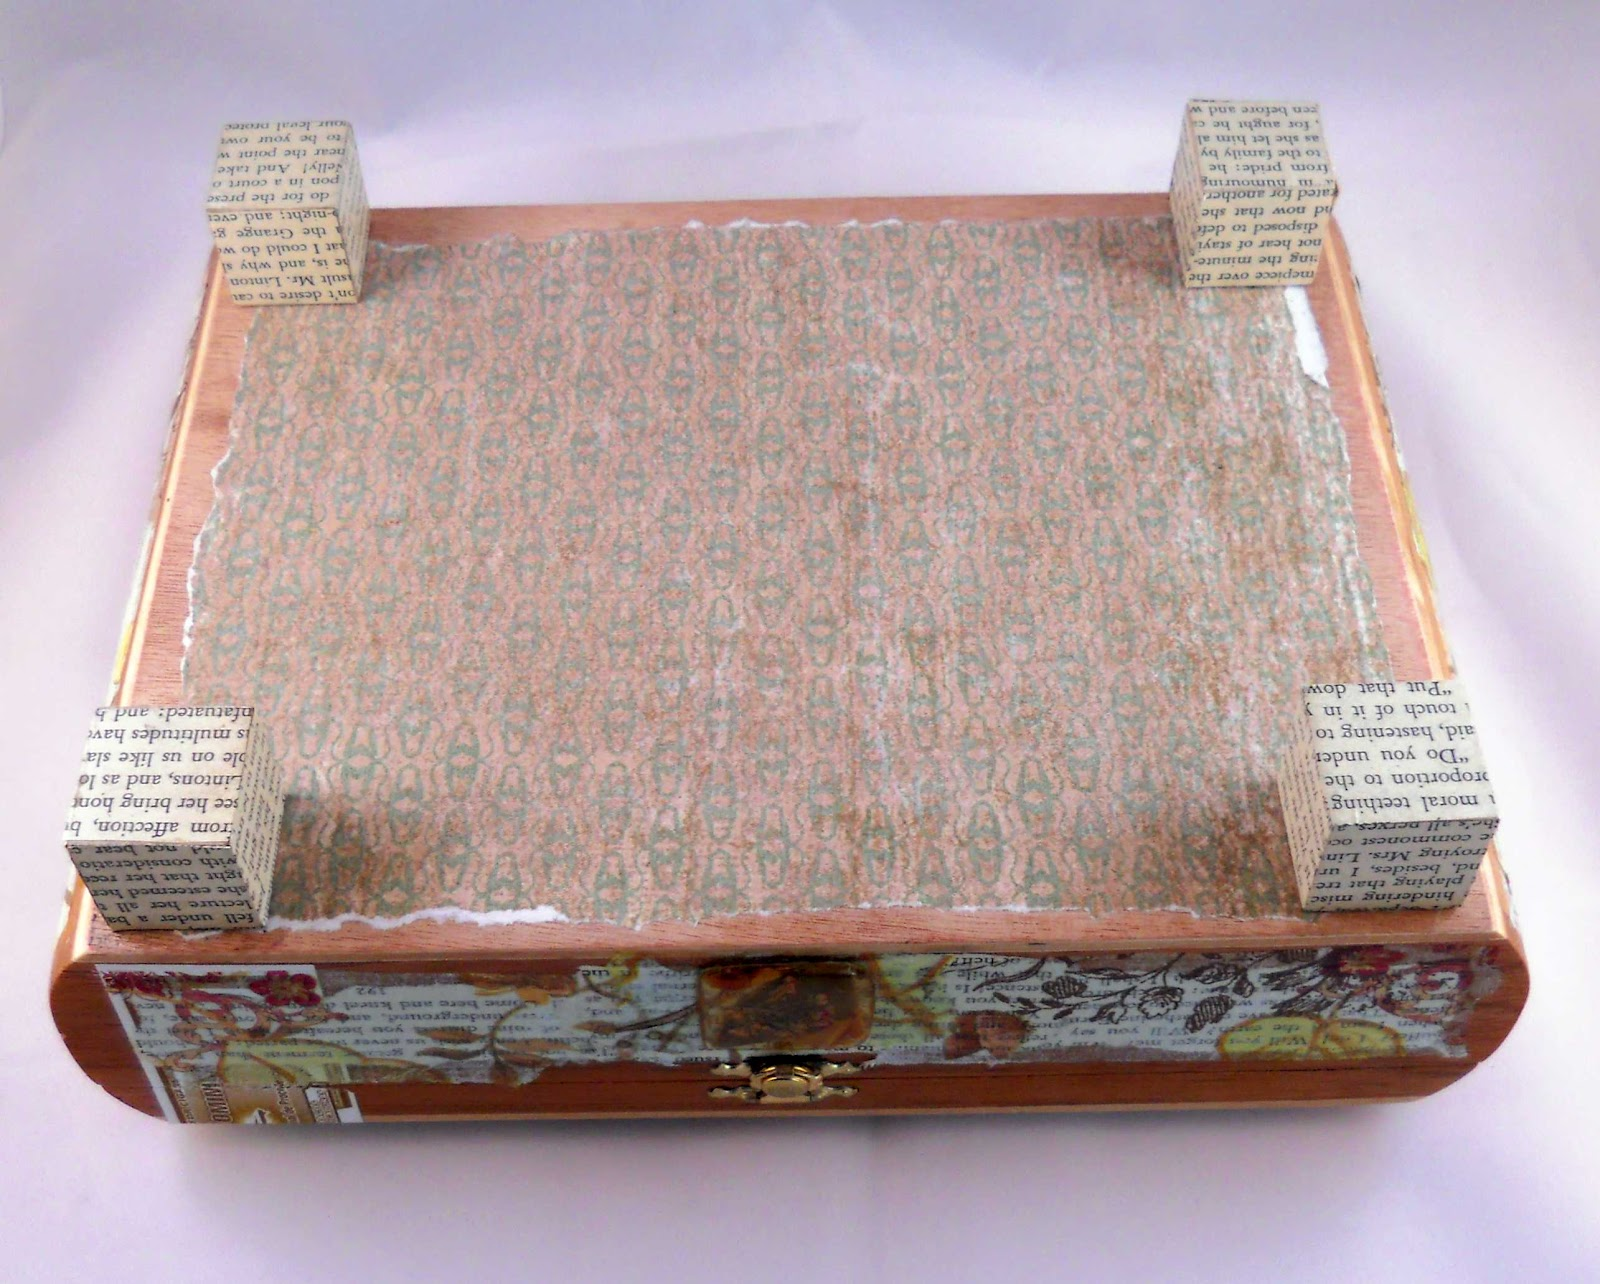 lid was covered with vintage wallpaper T he outside of the cigar box 1600x1284